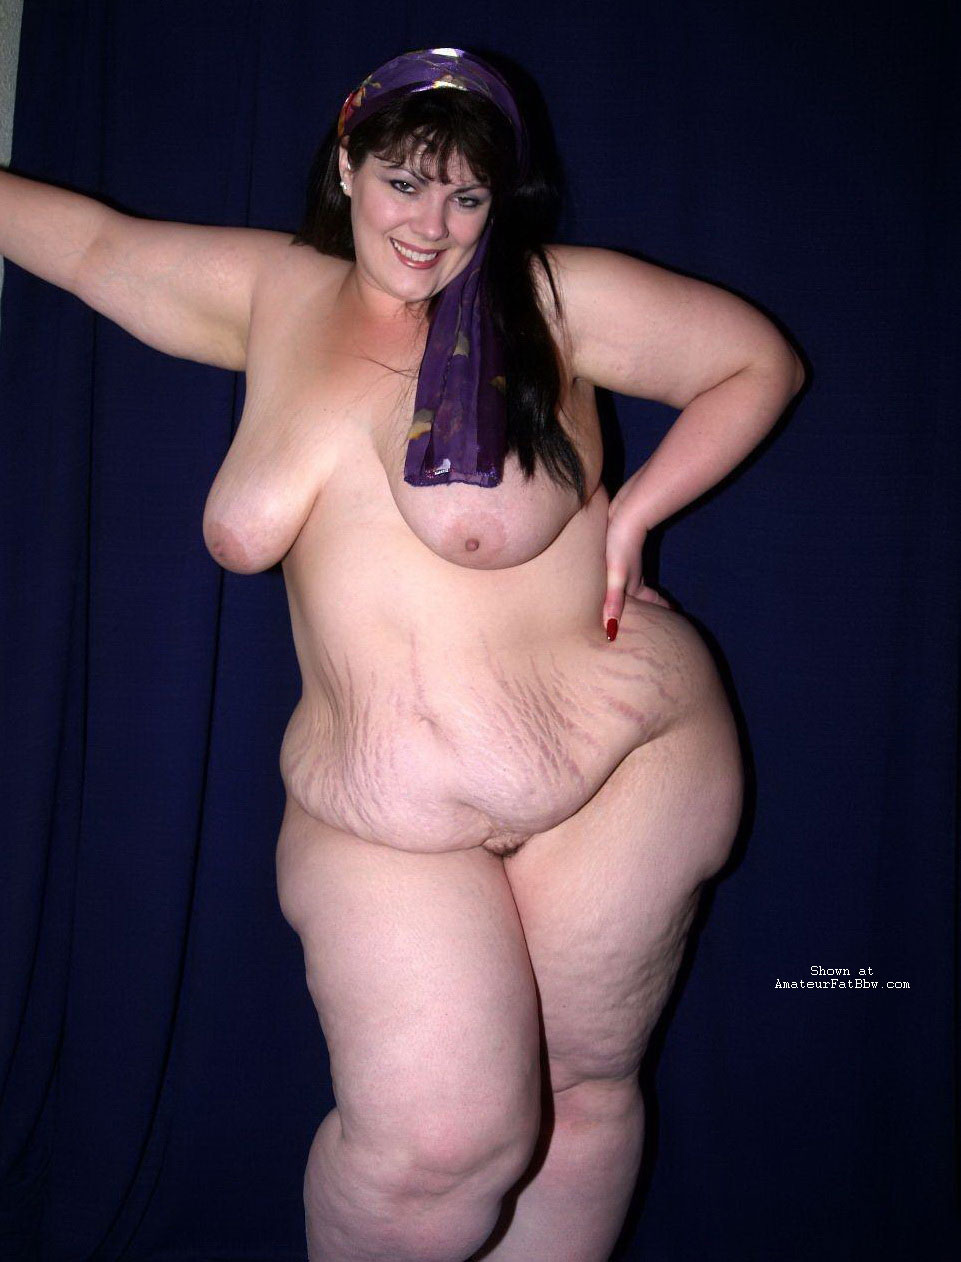 YOUR BBW - Free galleries of Fat fat girls, BBW, large